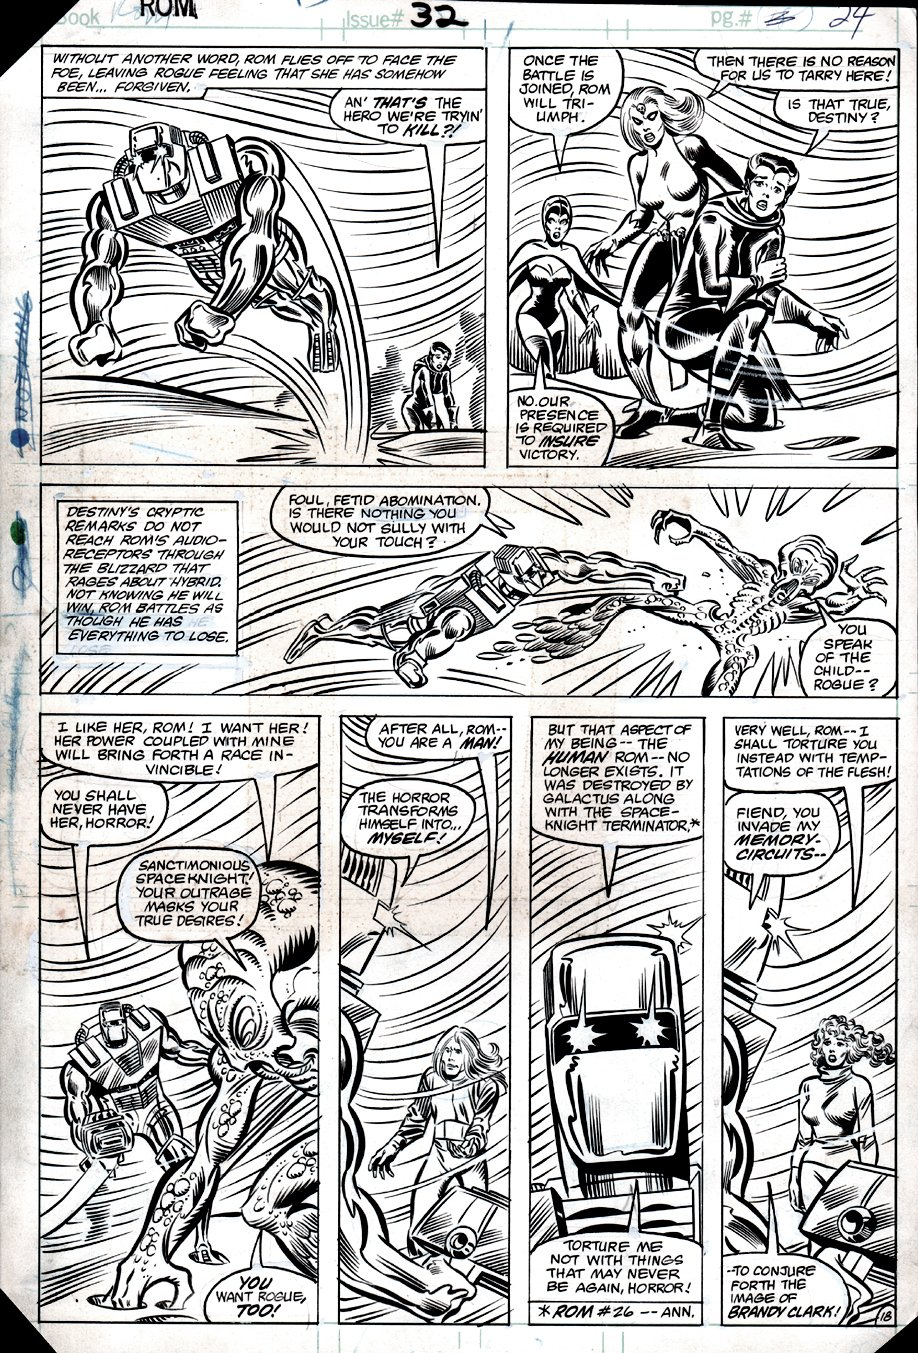 ROM #32 p 18 (VERY EARLY ROGUE, MYSTIQUE, DESTINY APPEARANCES, HELPING ROM BATTLE HYBRID!) 1982